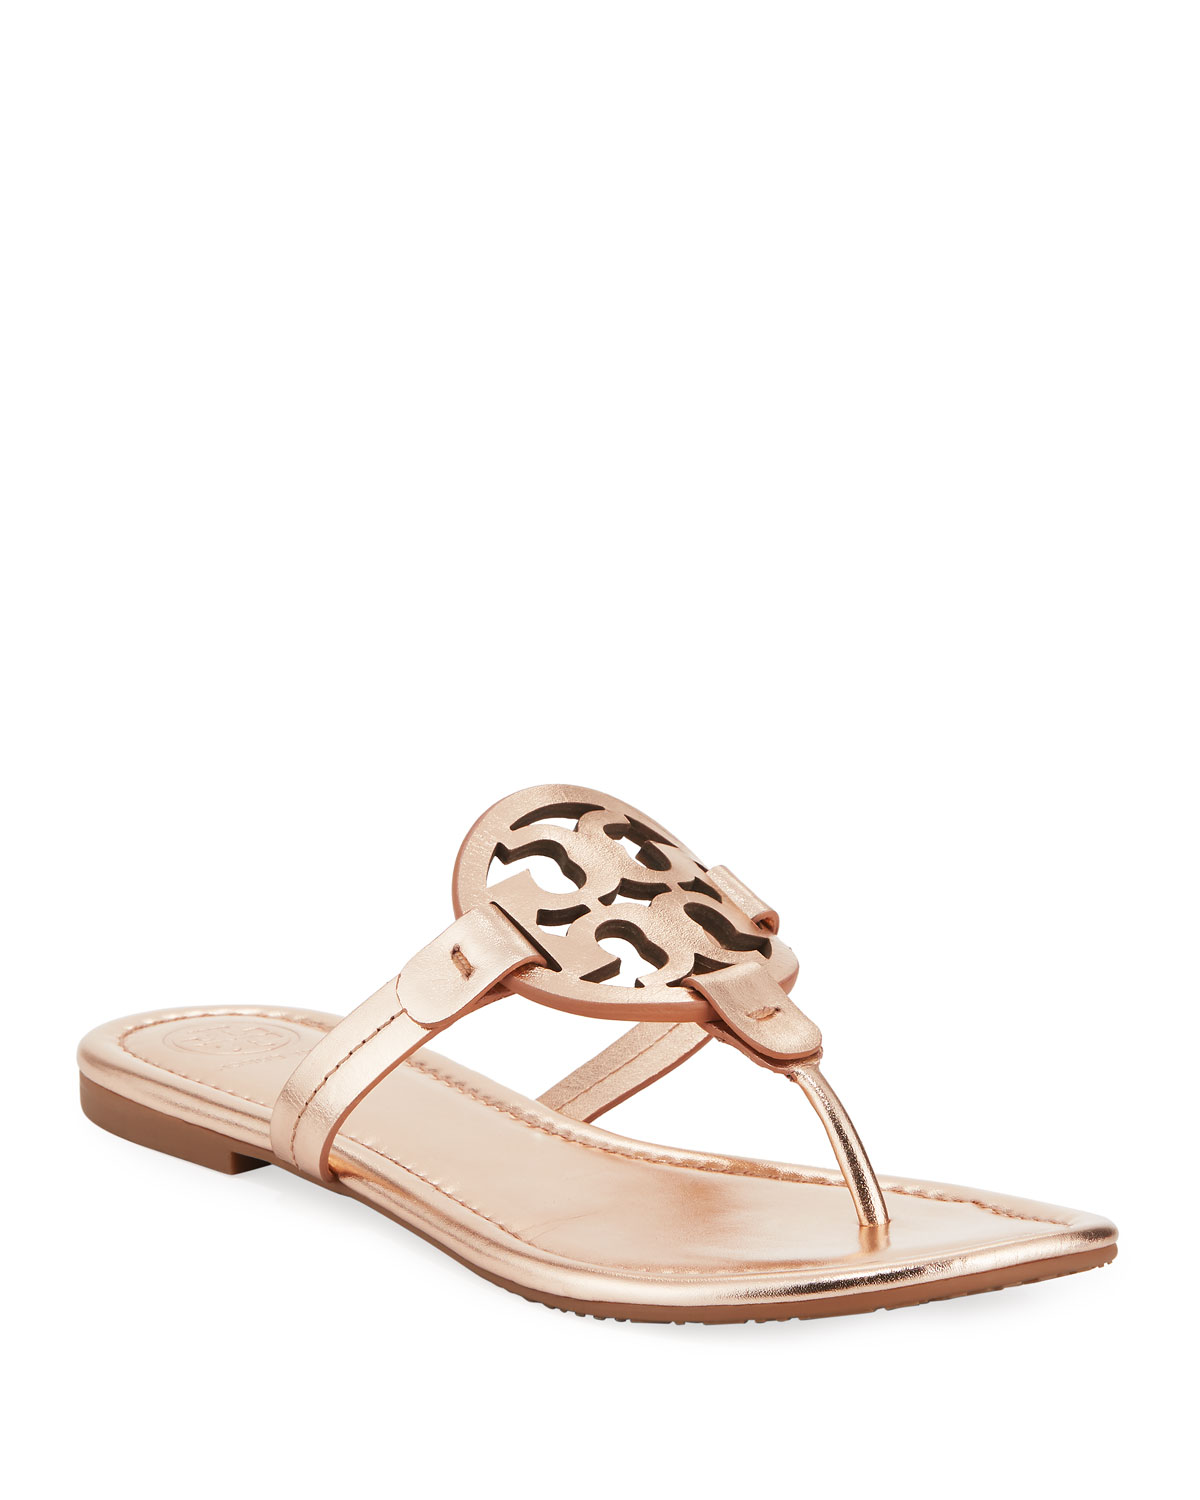 4087ac7df Tory Burch Miller Medallion Metallic Leather Flat Slide Sandal ...